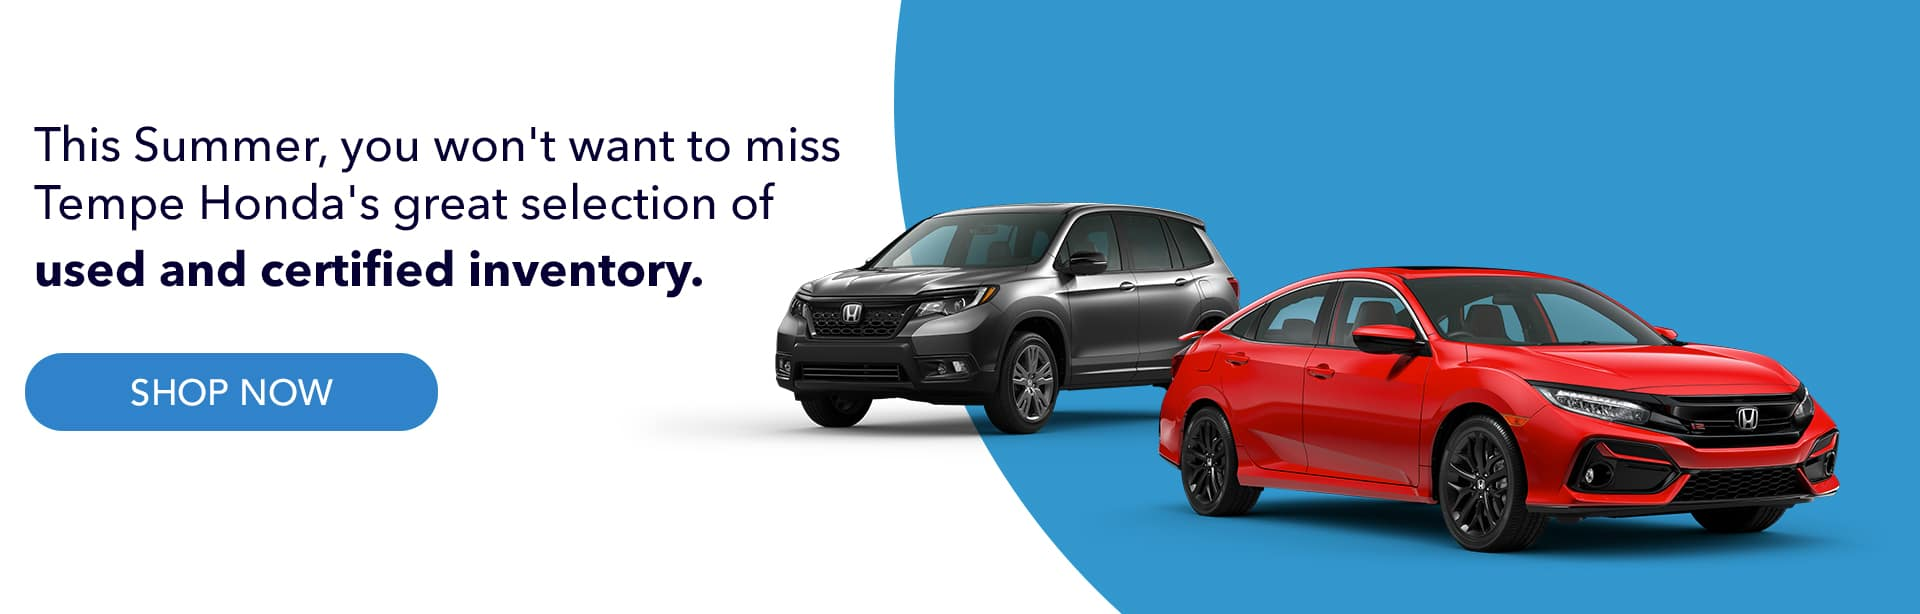 This summer, you won't want to miss Tempe Honda's great selection of used and certified inventory.